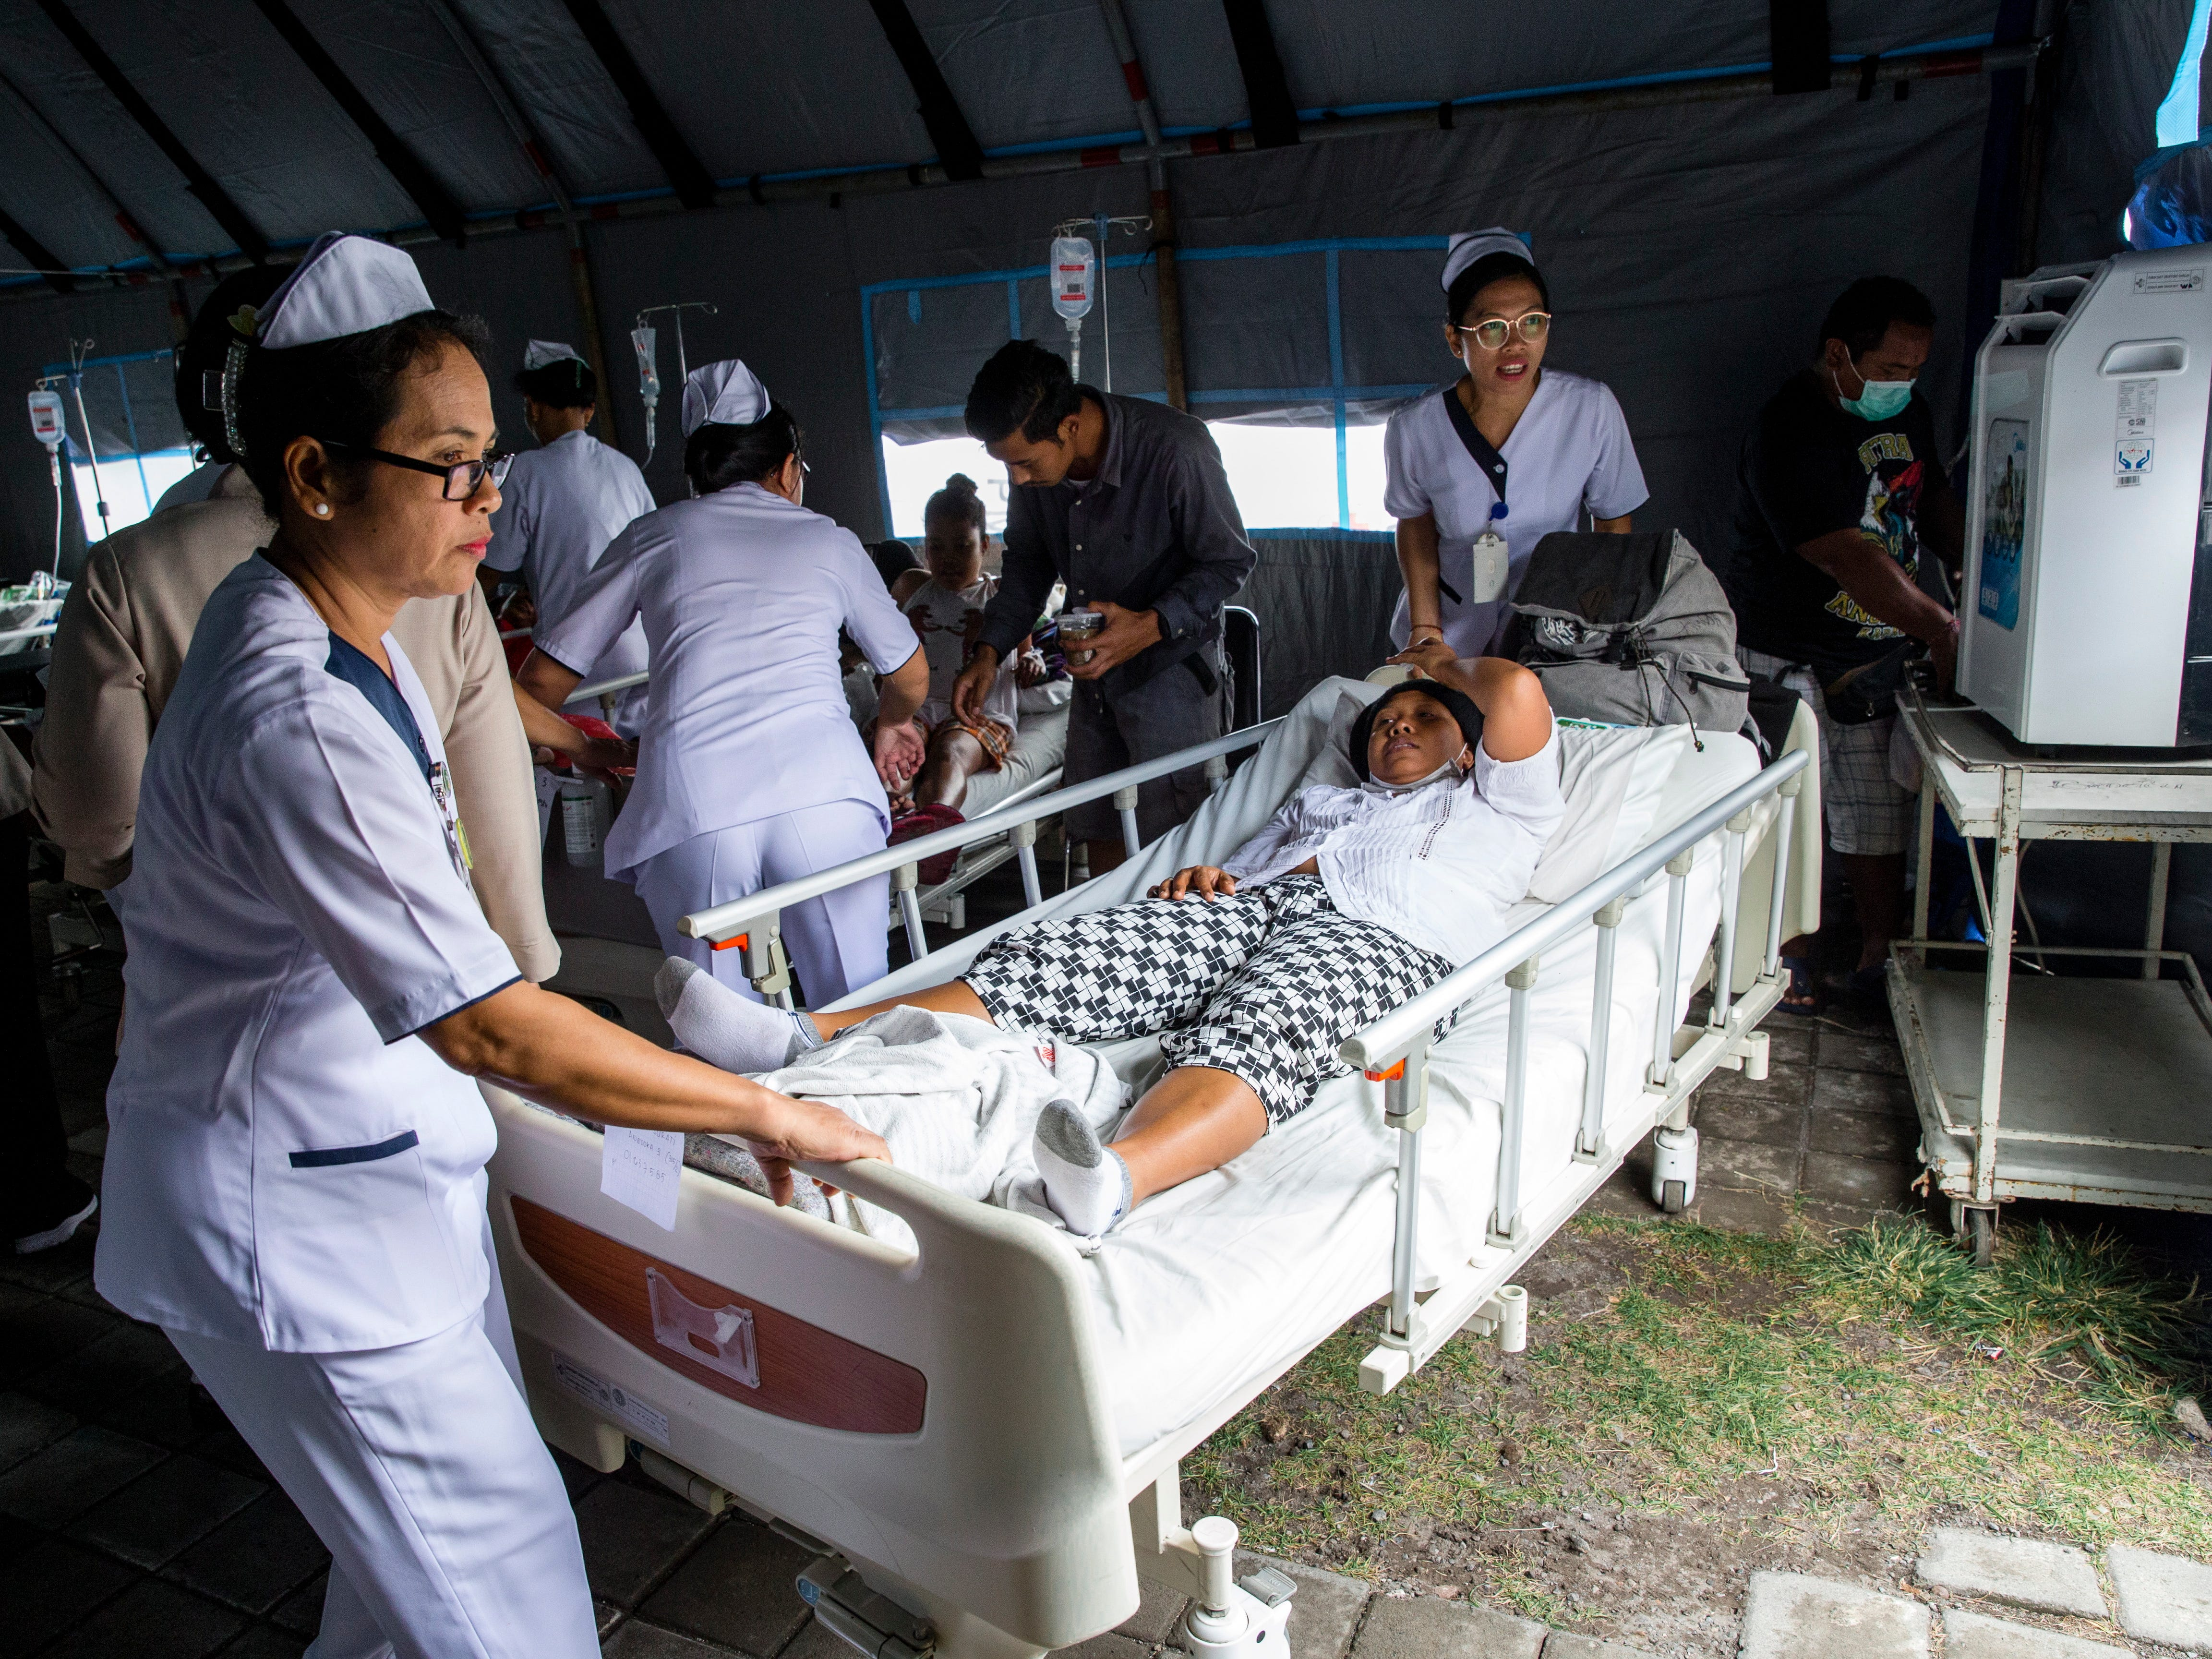 Hospital patients are moved to an emergency tent outside of a hospital building after an earthquake in Denpasar, Bali, Indonesia, on Aug. 6, 2018.